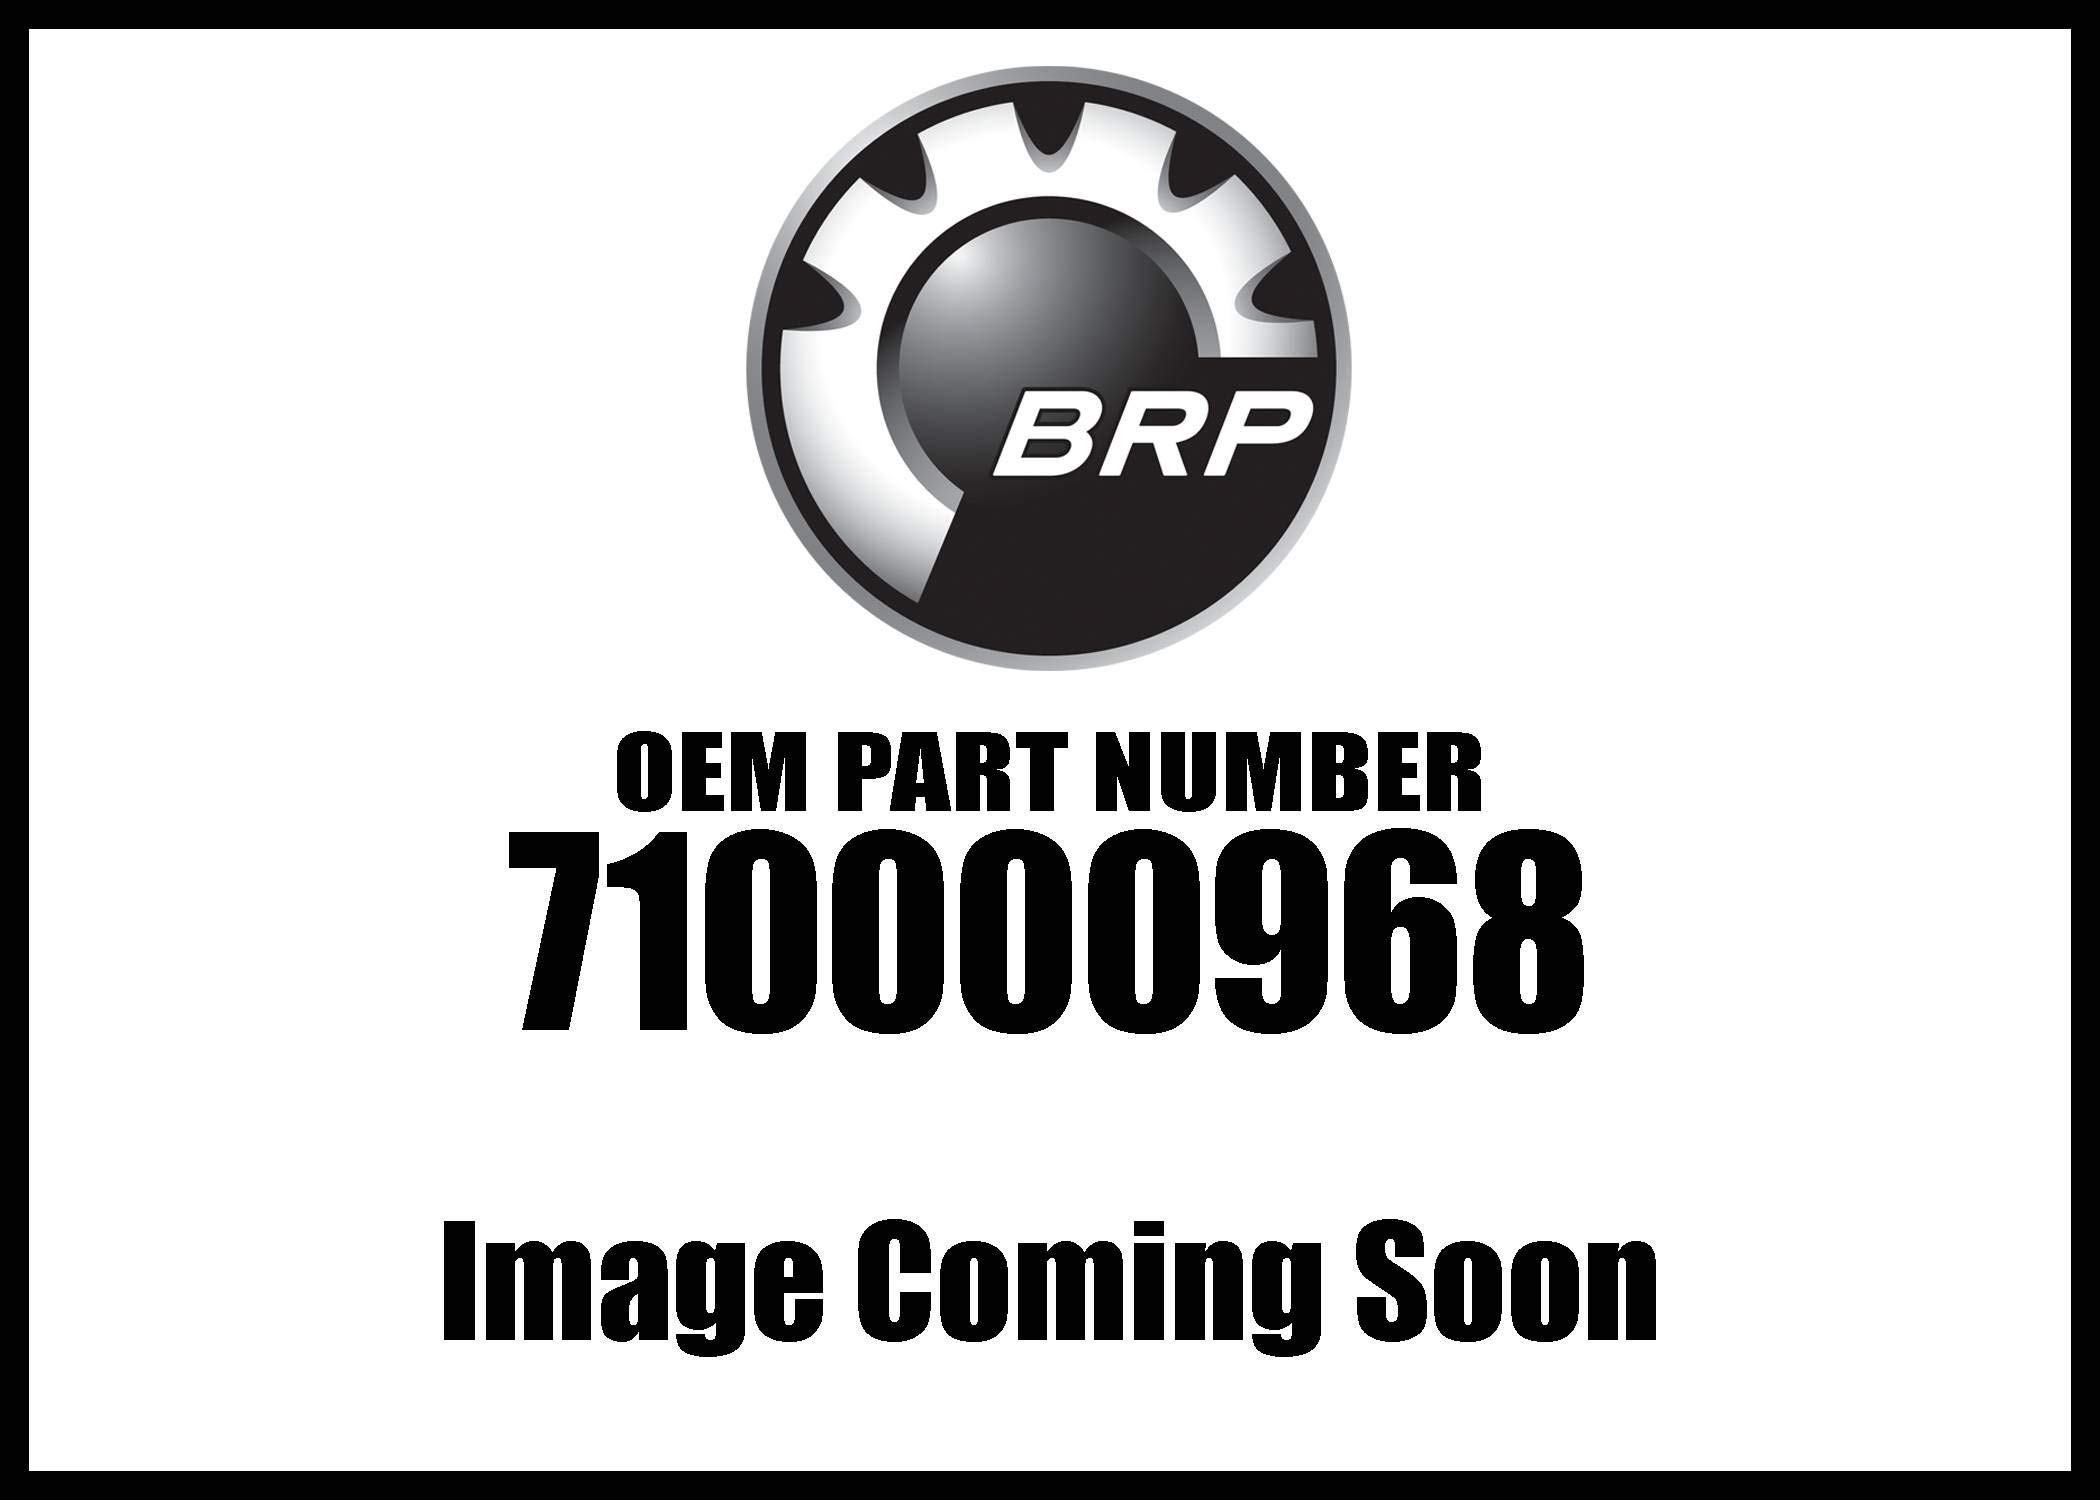 Spyder 2008-2012 Spyder Rs Roadster Sm5 Spyder Gs 990 Semi Auto Fuse Decal 710000968 New Oem